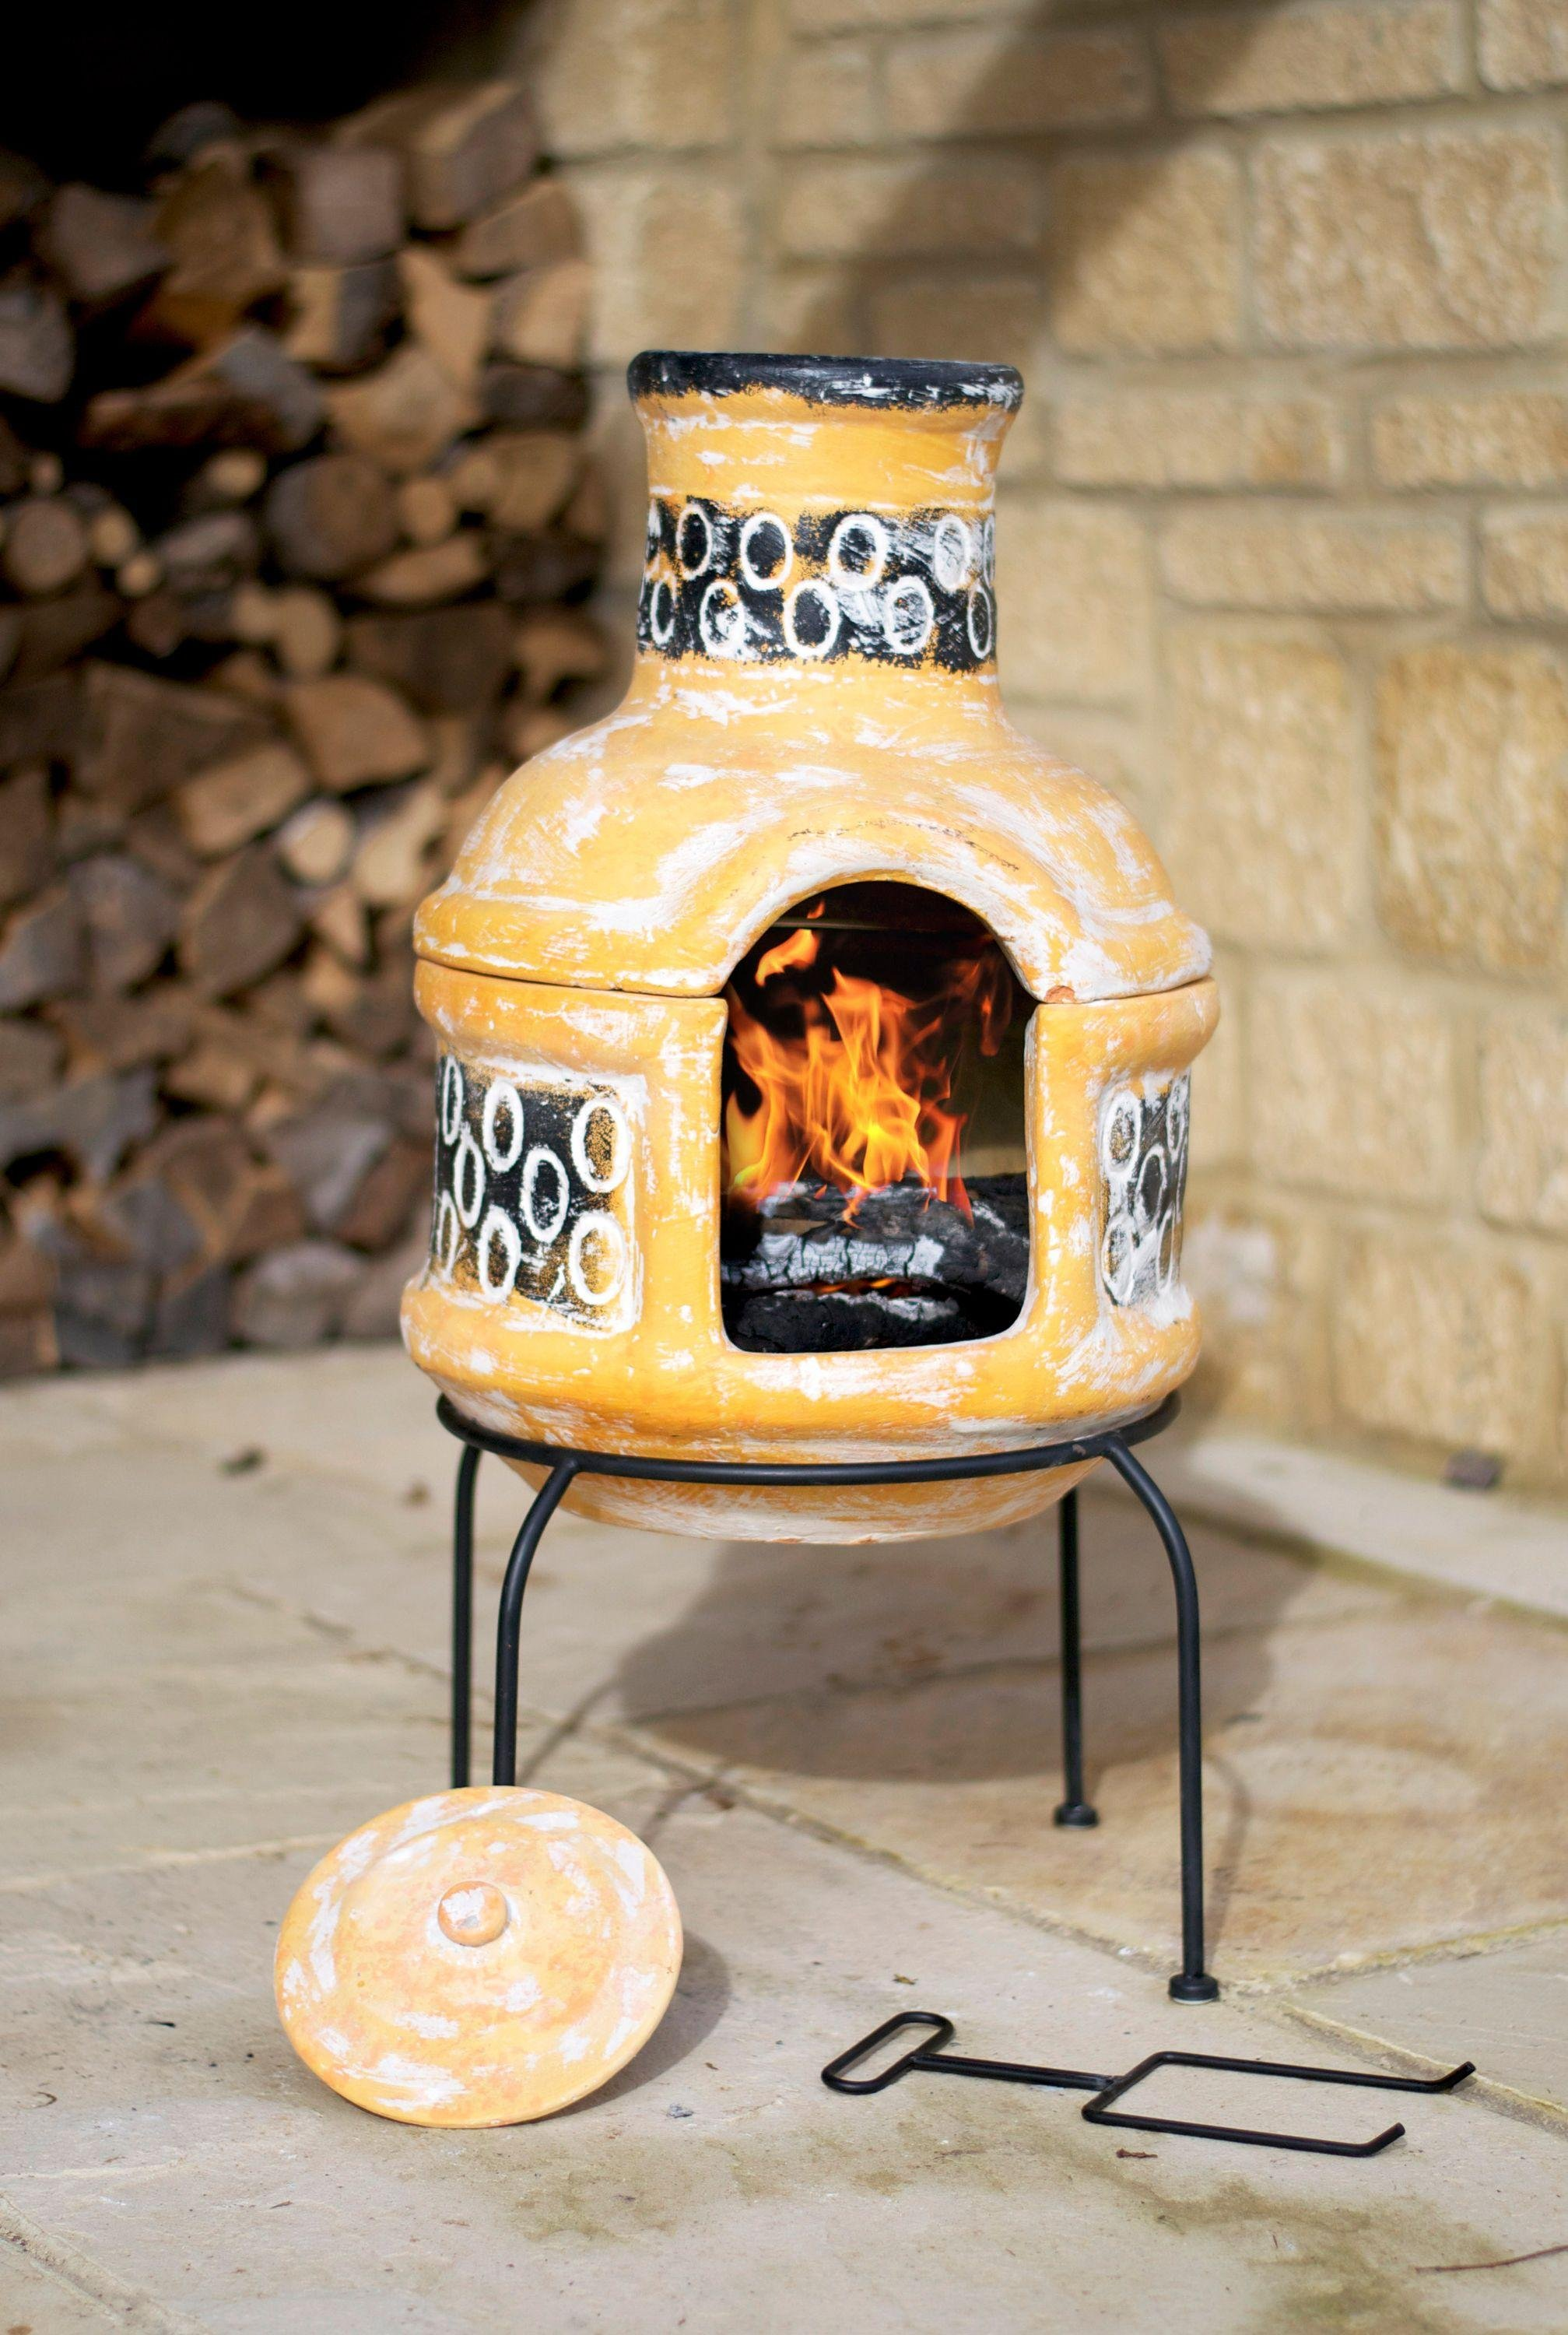 La Hacienda Two Piece Clay Chiminea with Cooking Grill. lowest price